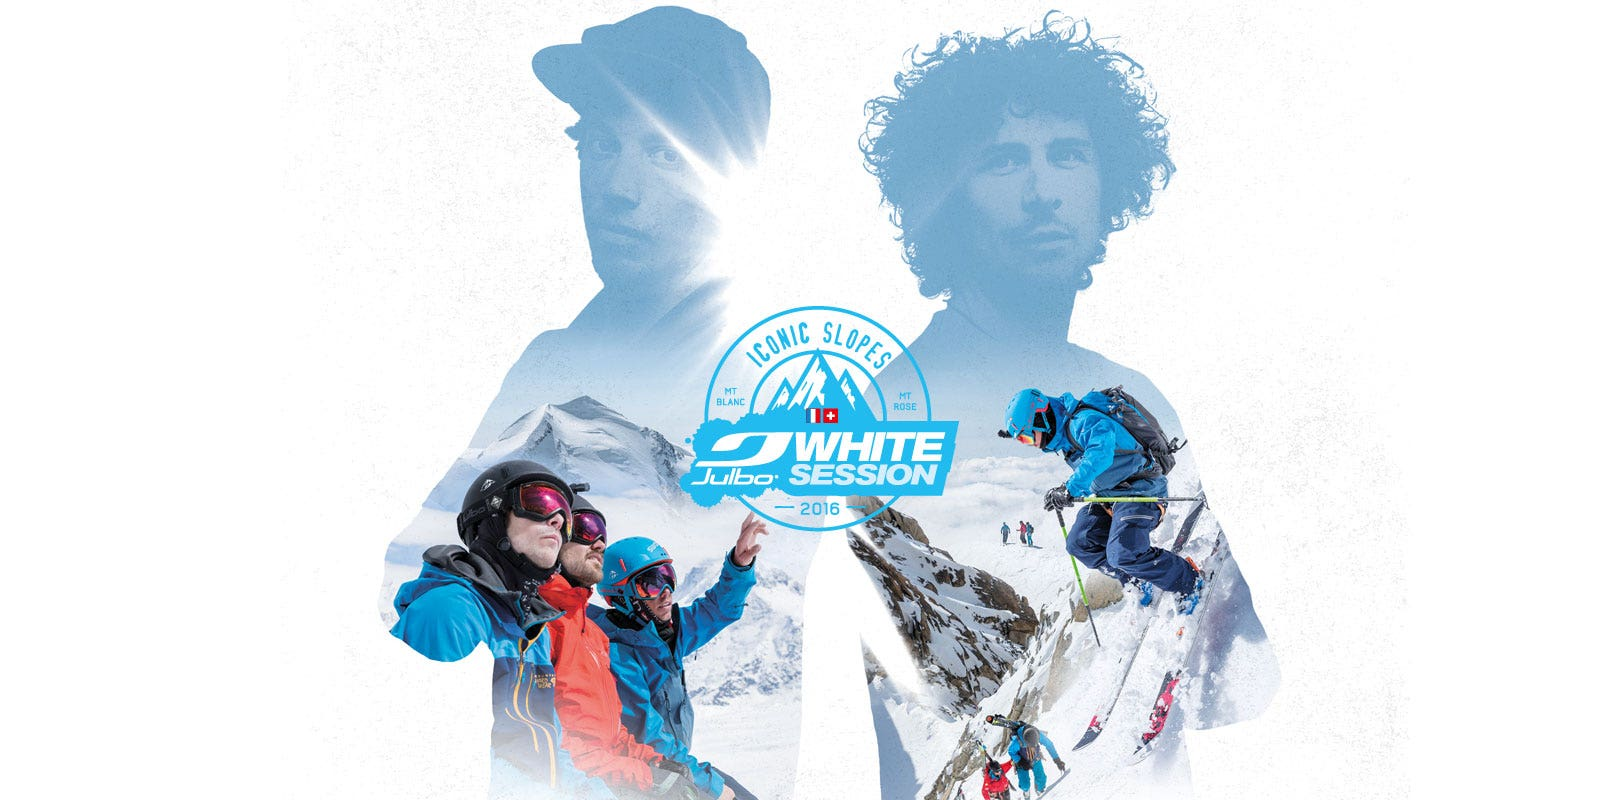 White Session | Steep & Mythic